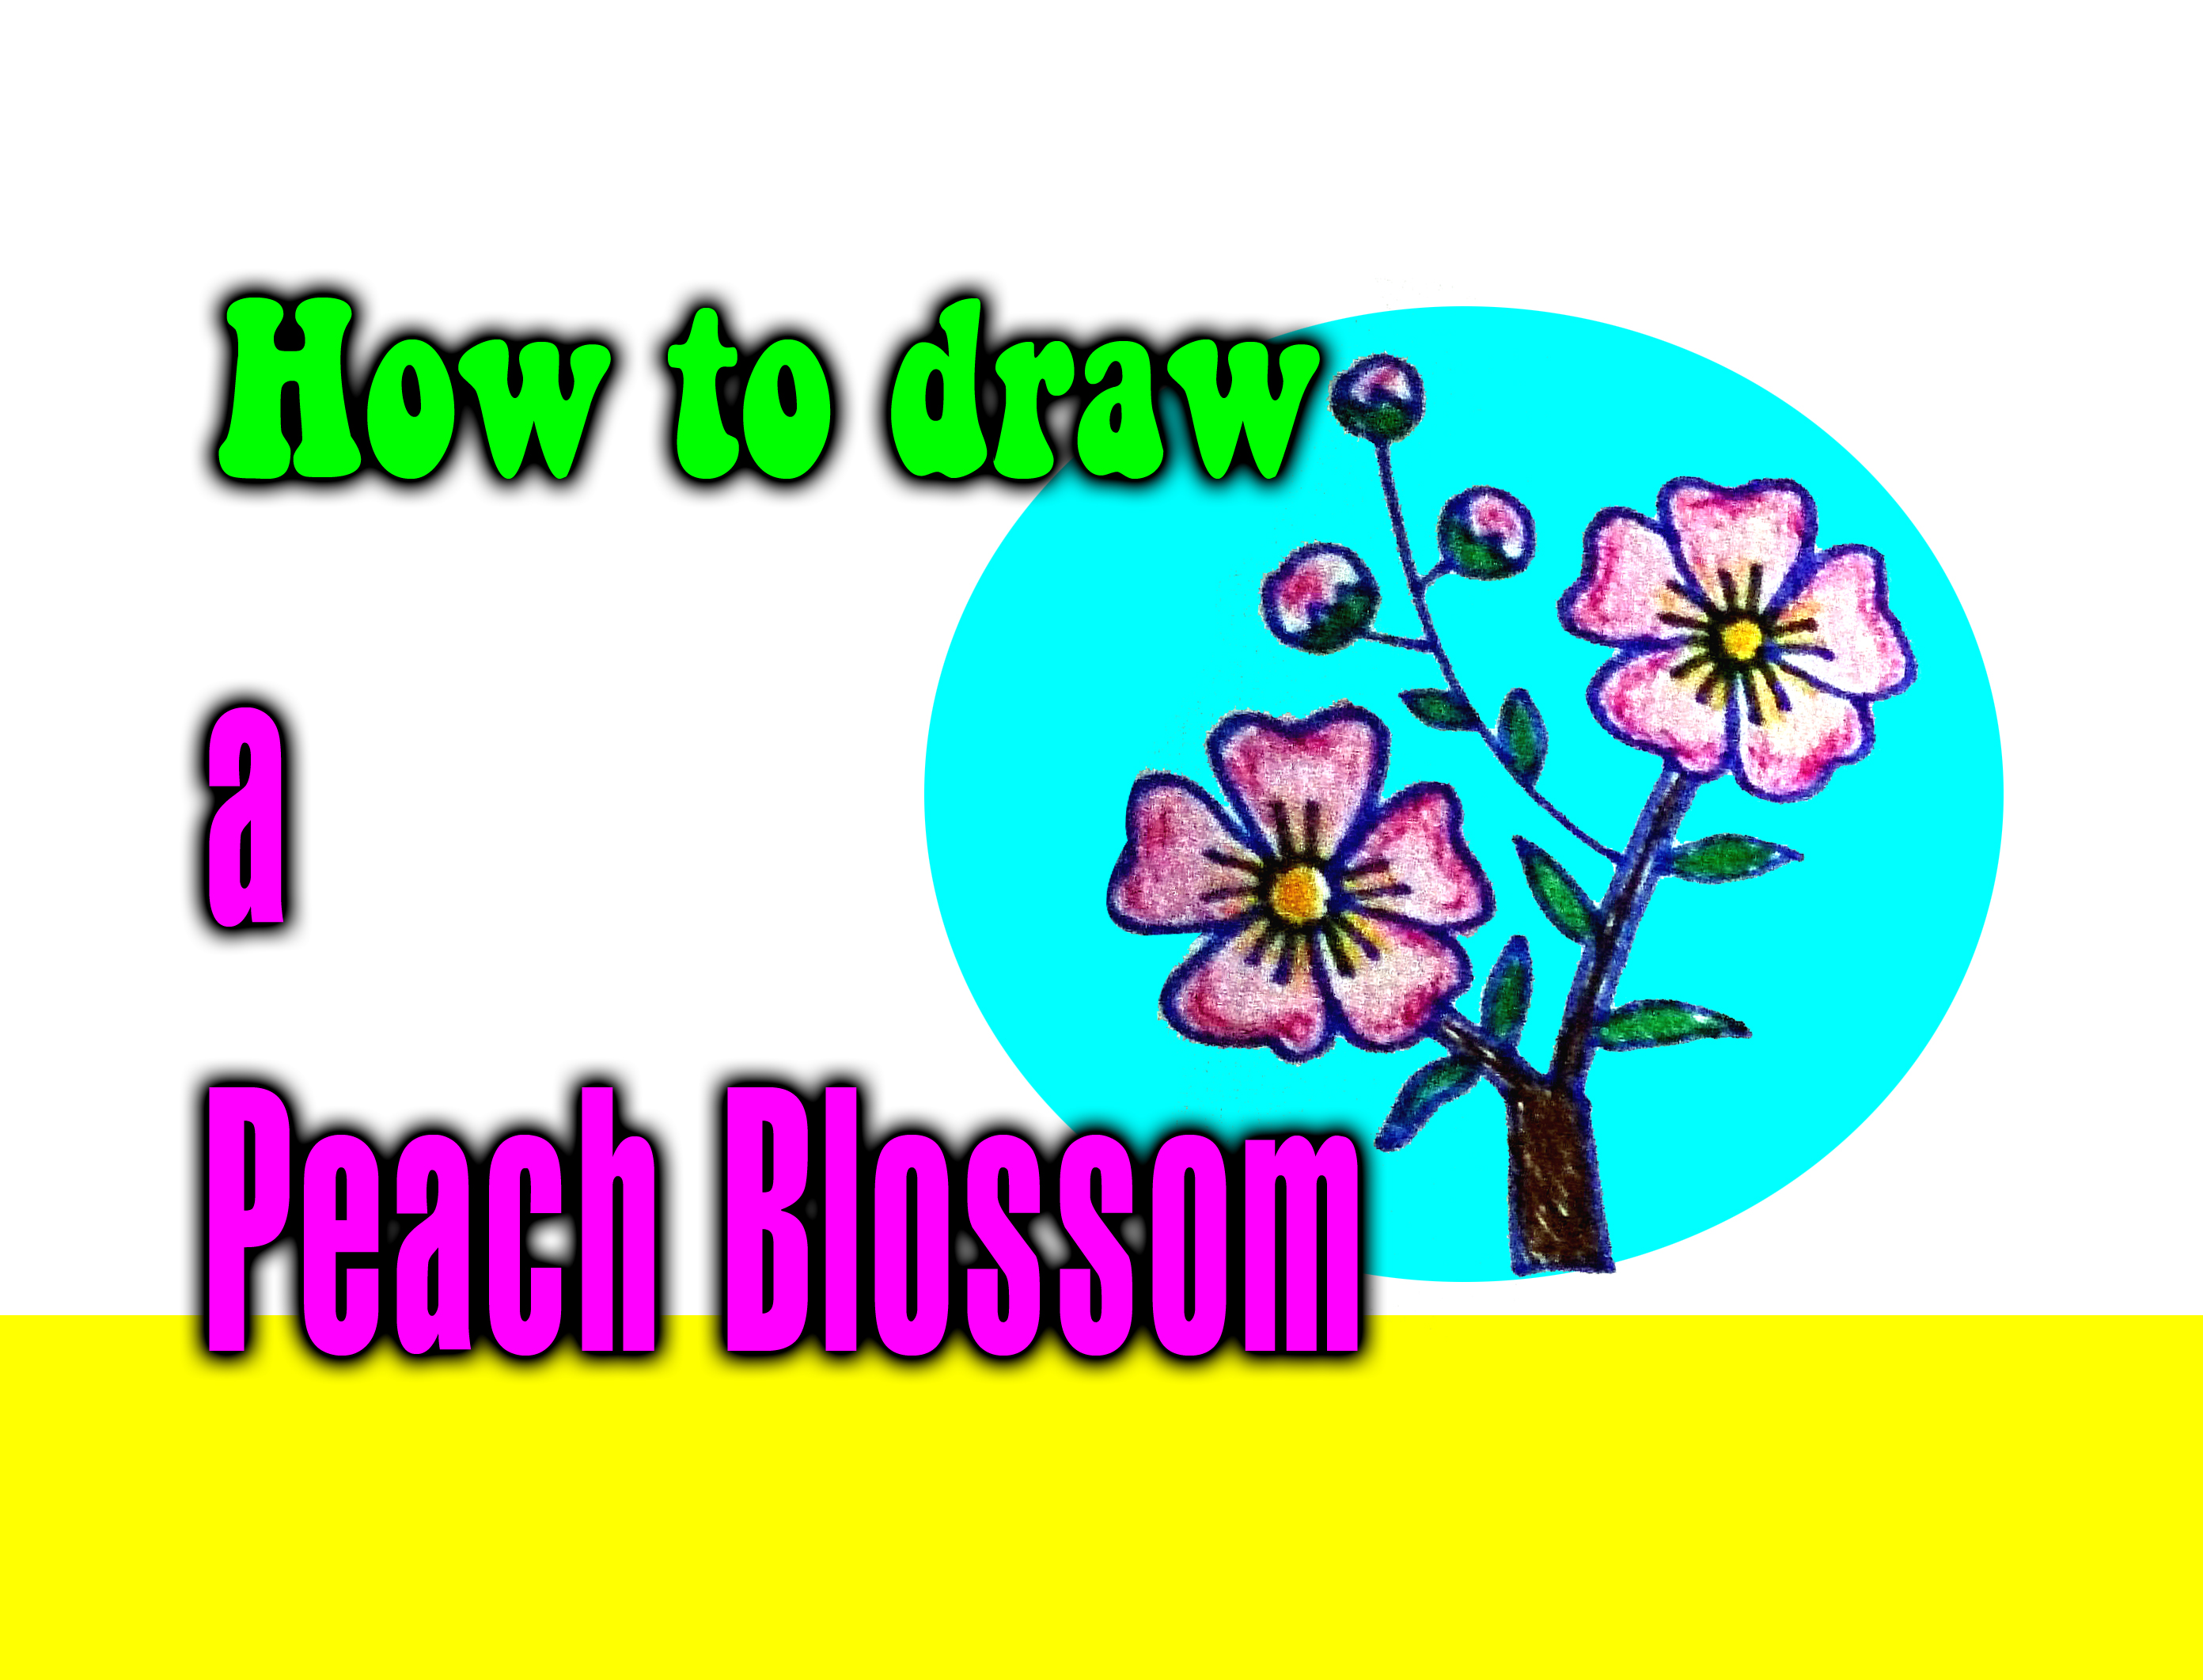 How to draw a Peach Blossom for kids - drawingsforkids.net